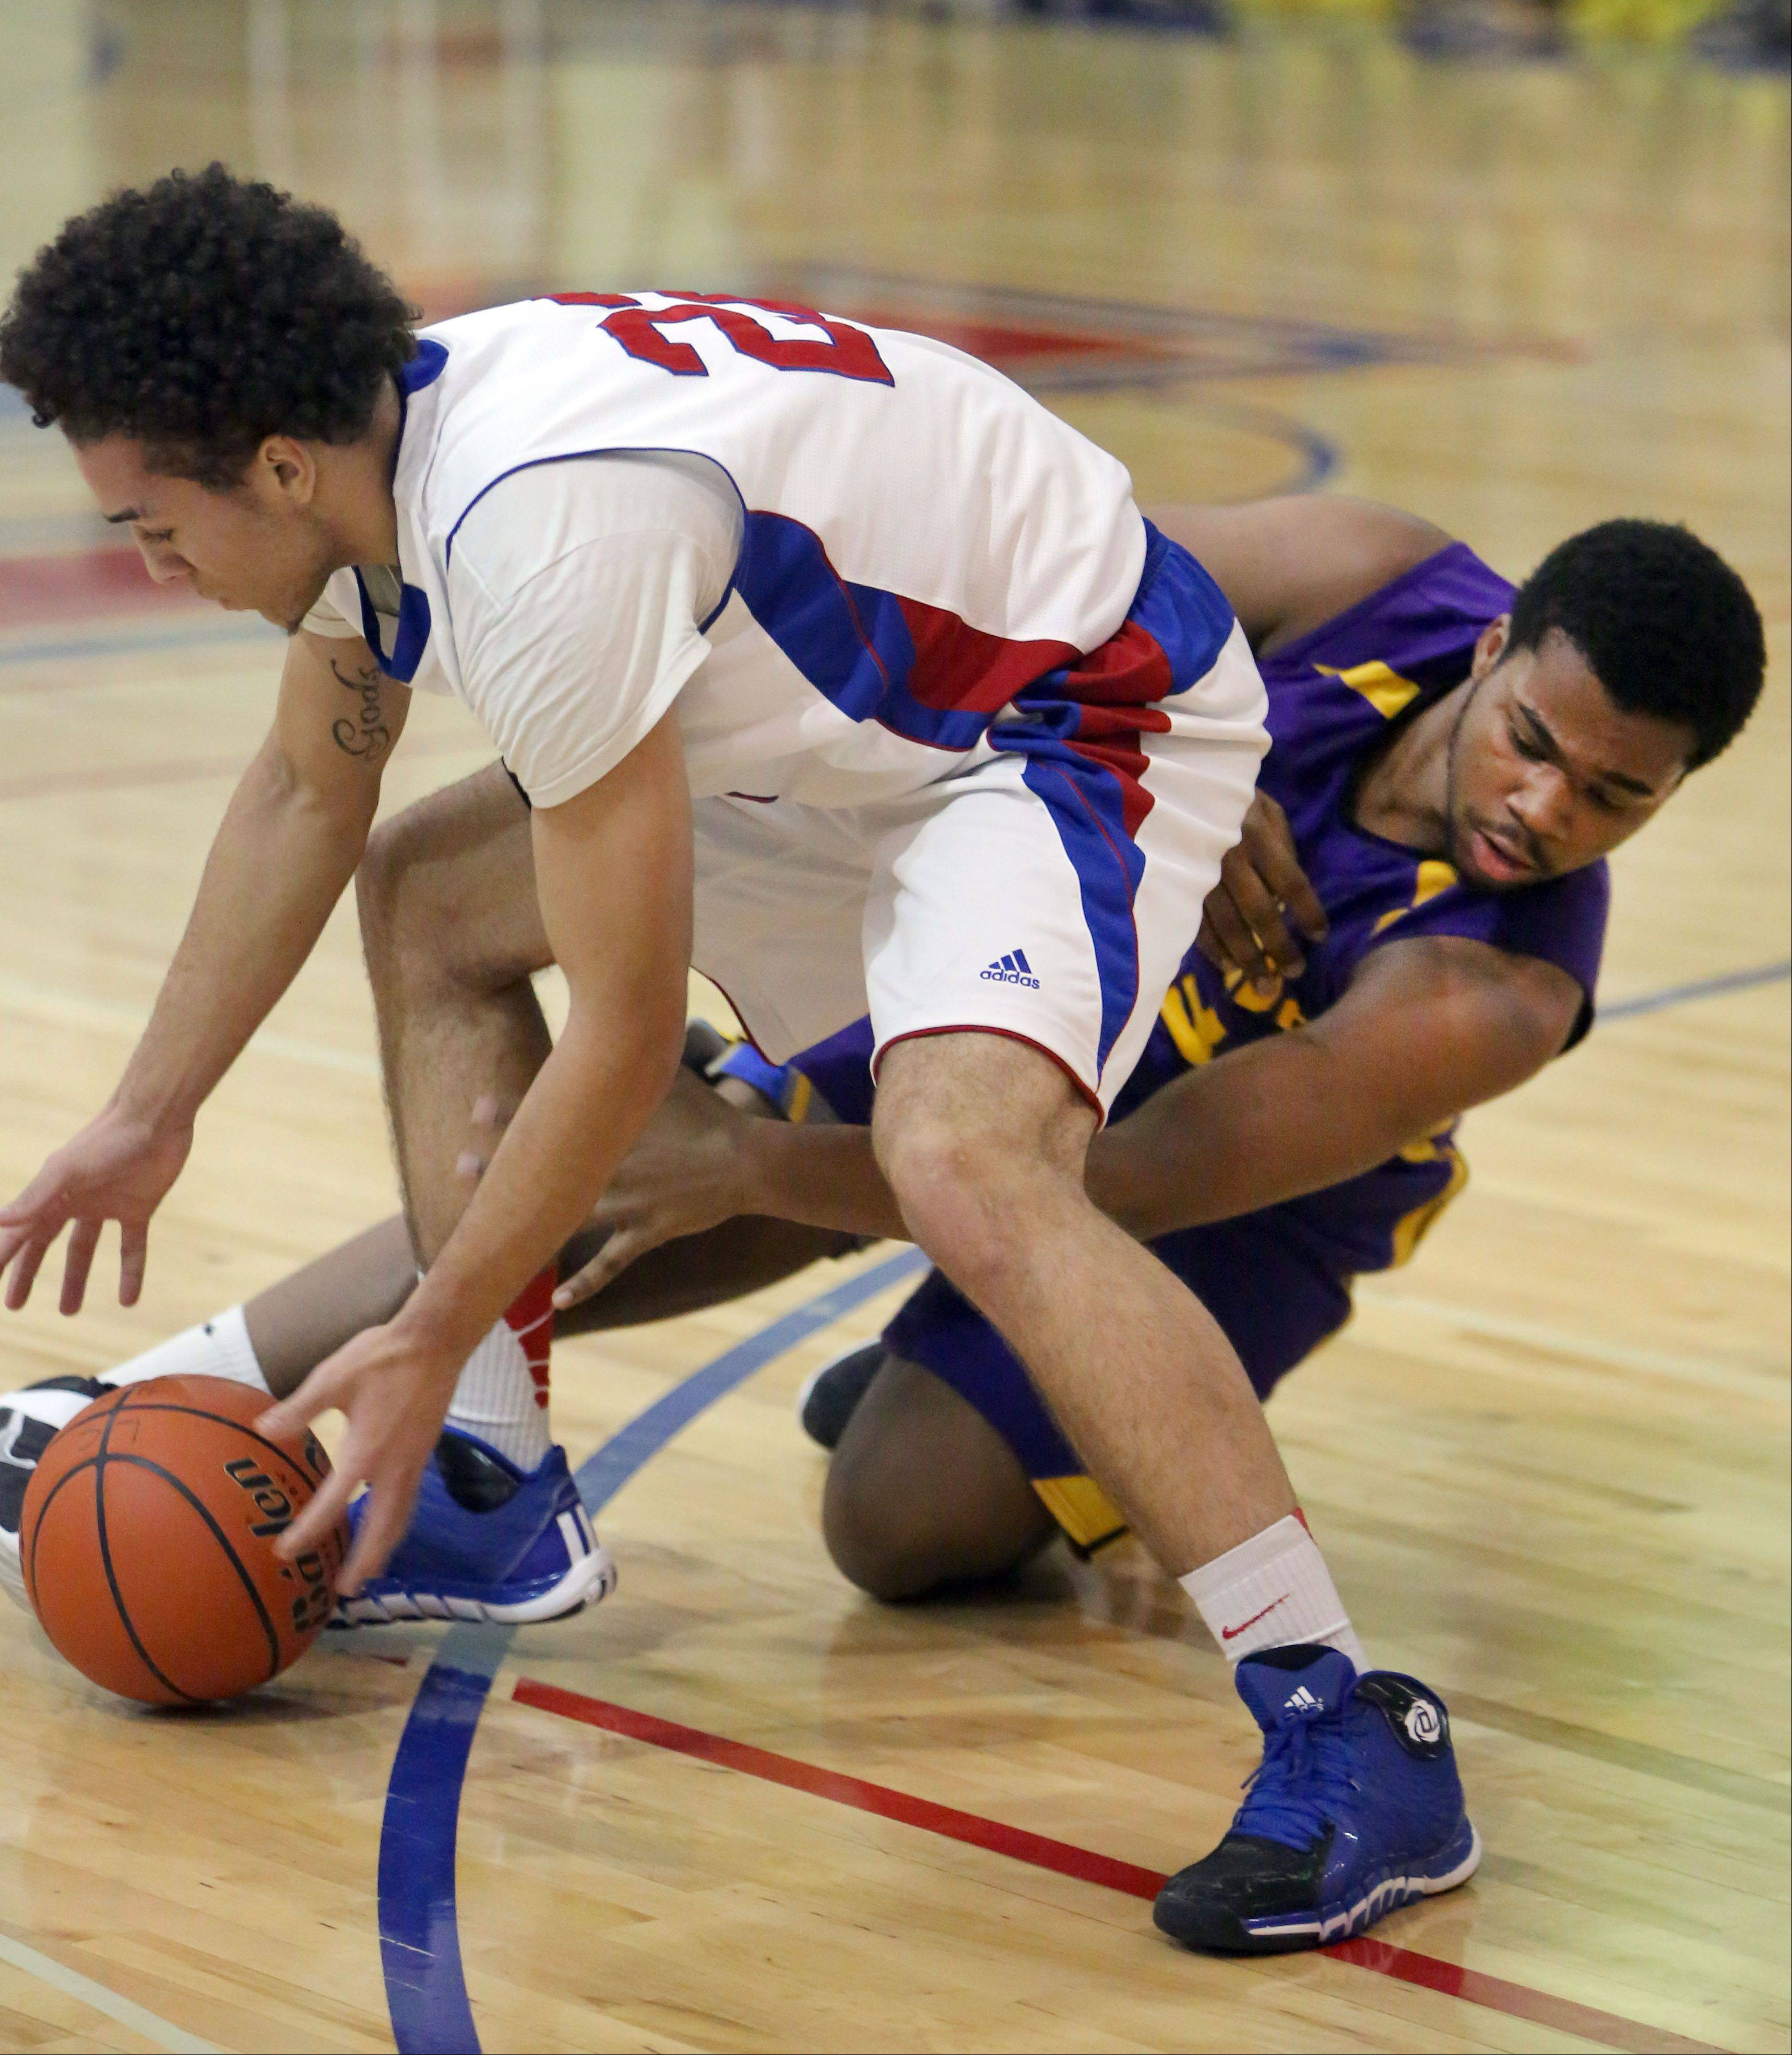 Steve Lundy/slundy@dailyherald.com Lakes' Tramone Hudson, left, and Wauconda's Dion Head scramble for a loose ball Tuesday night at Lakes.